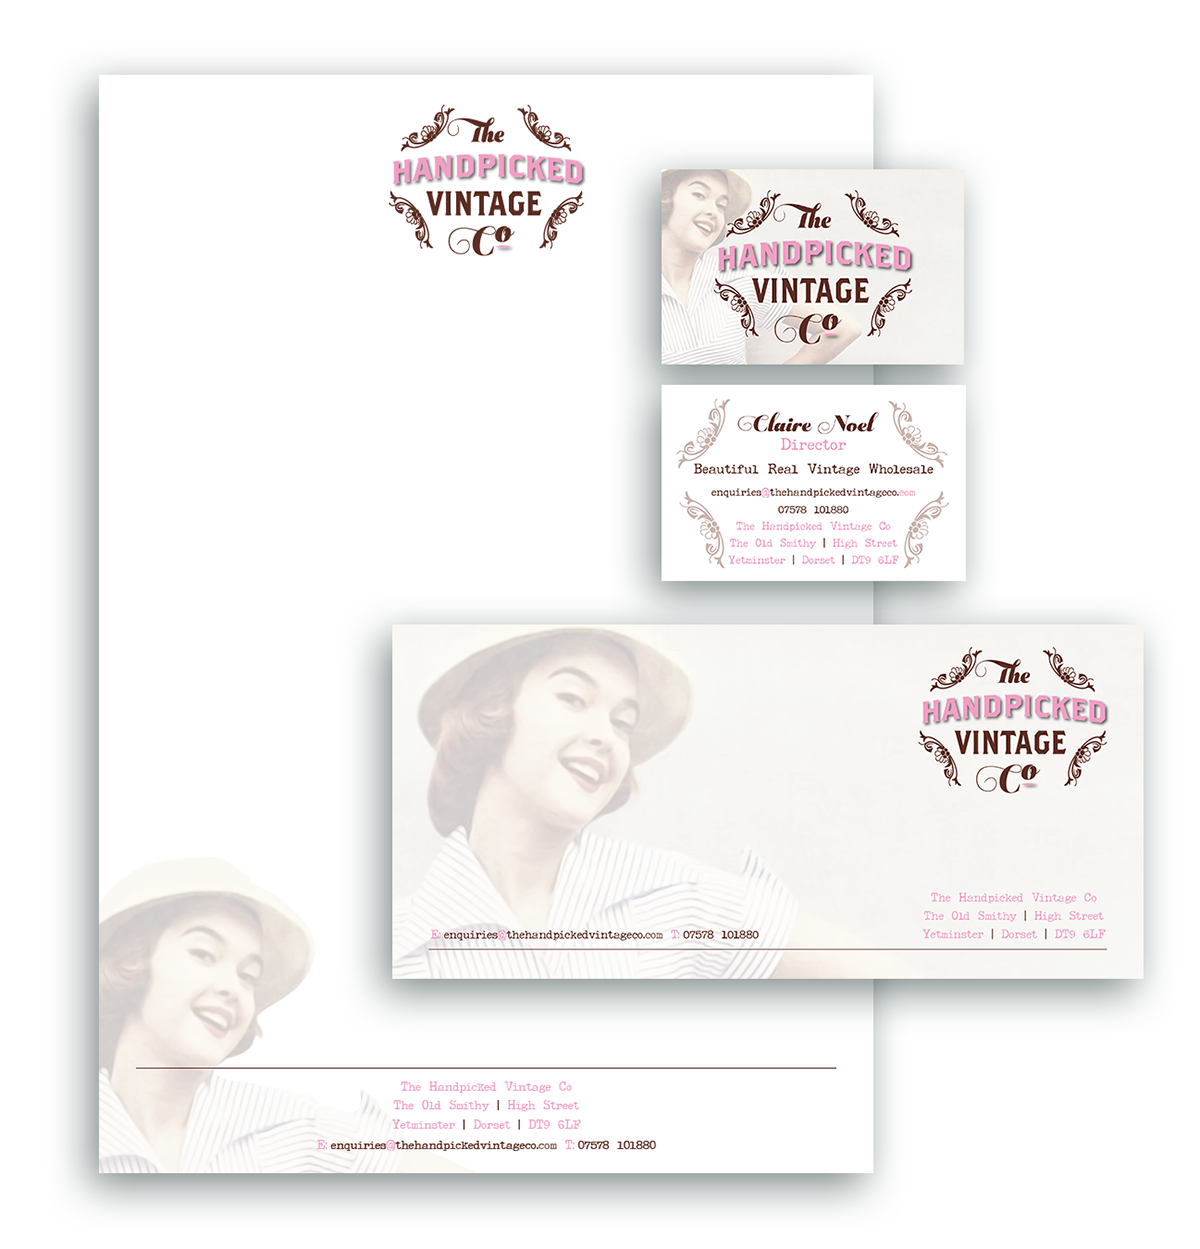 The Handpicked Vintage Co Letterhead Compliments Slip Business Card Design Sherborne